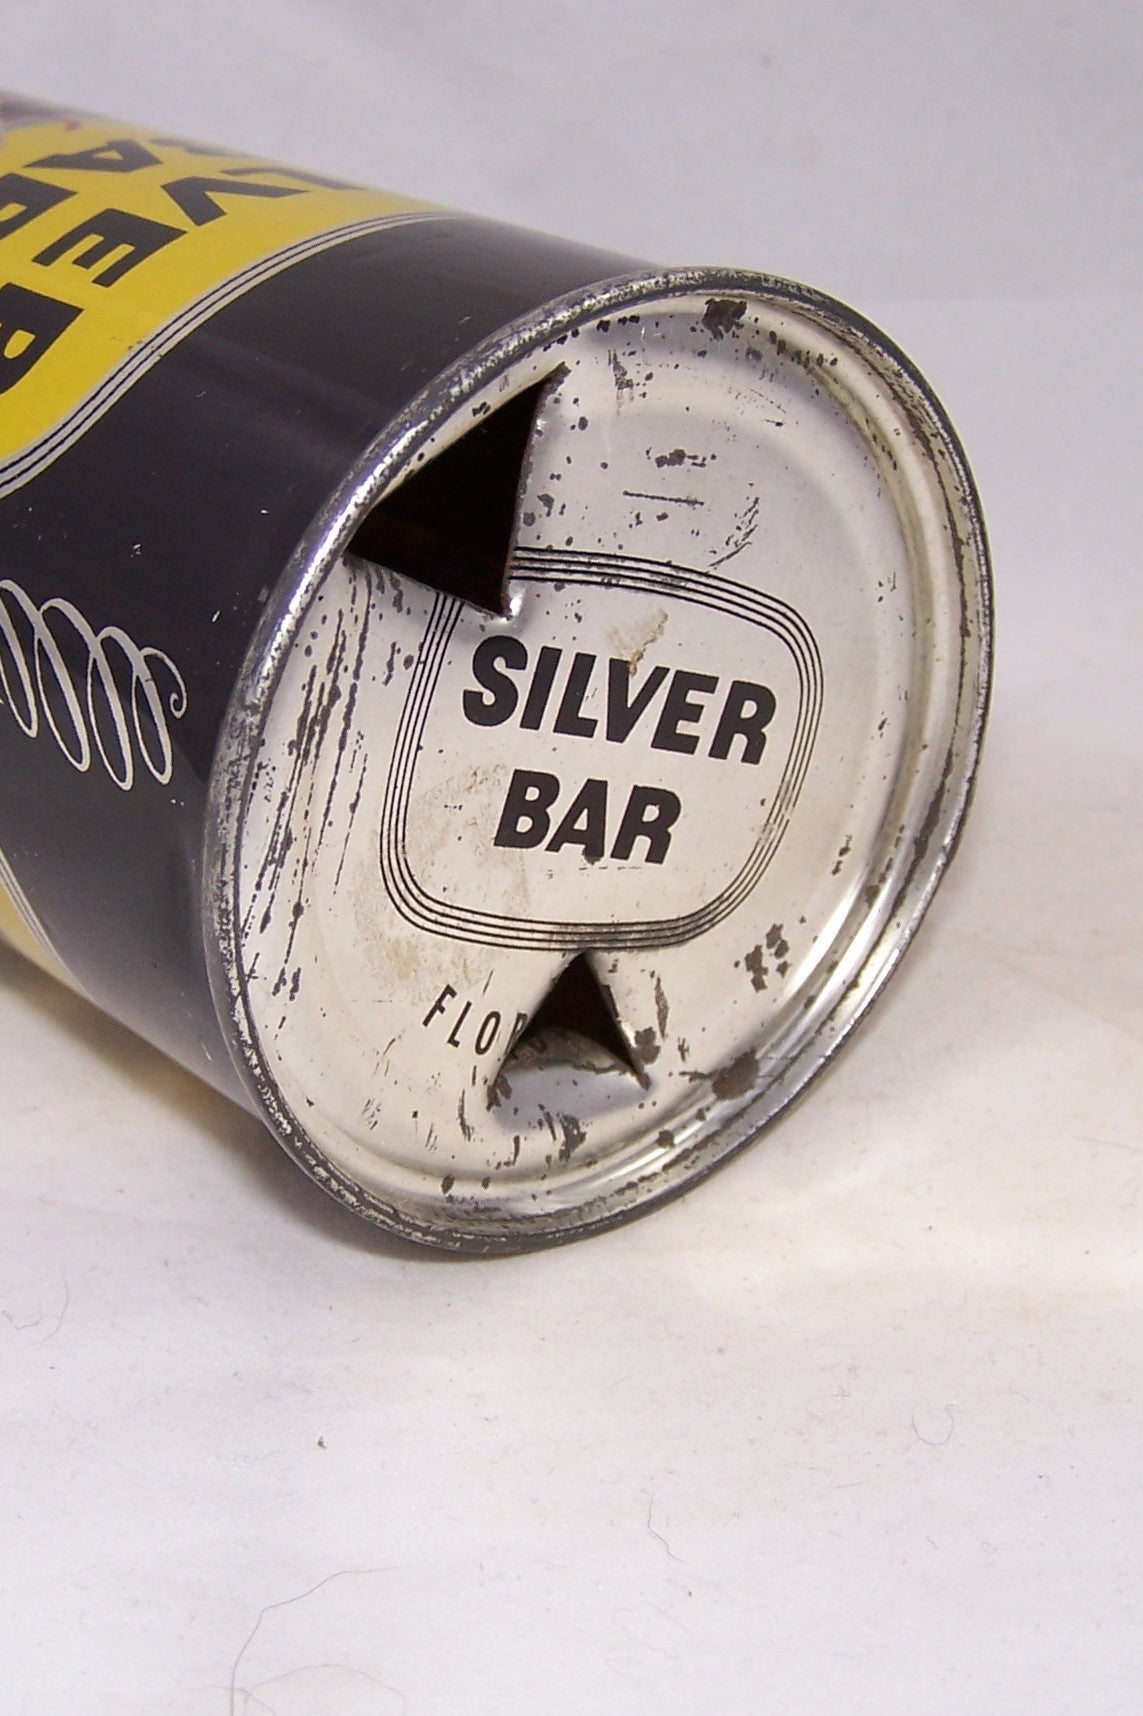 Silver Bar Premium Lager Beer, USBC 134-03, Grade 1/1+ Sold on 04/04/19